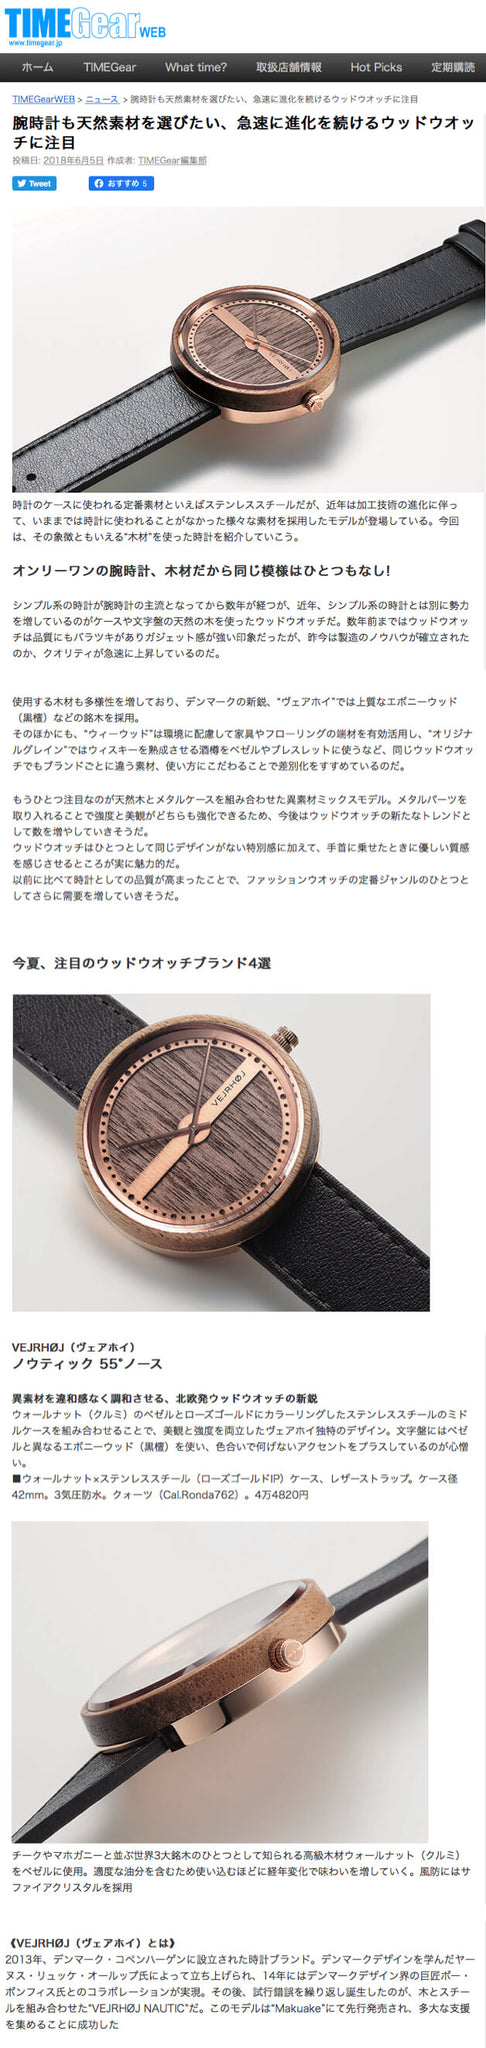 VEJRHØJ watches in TIMEGear japan